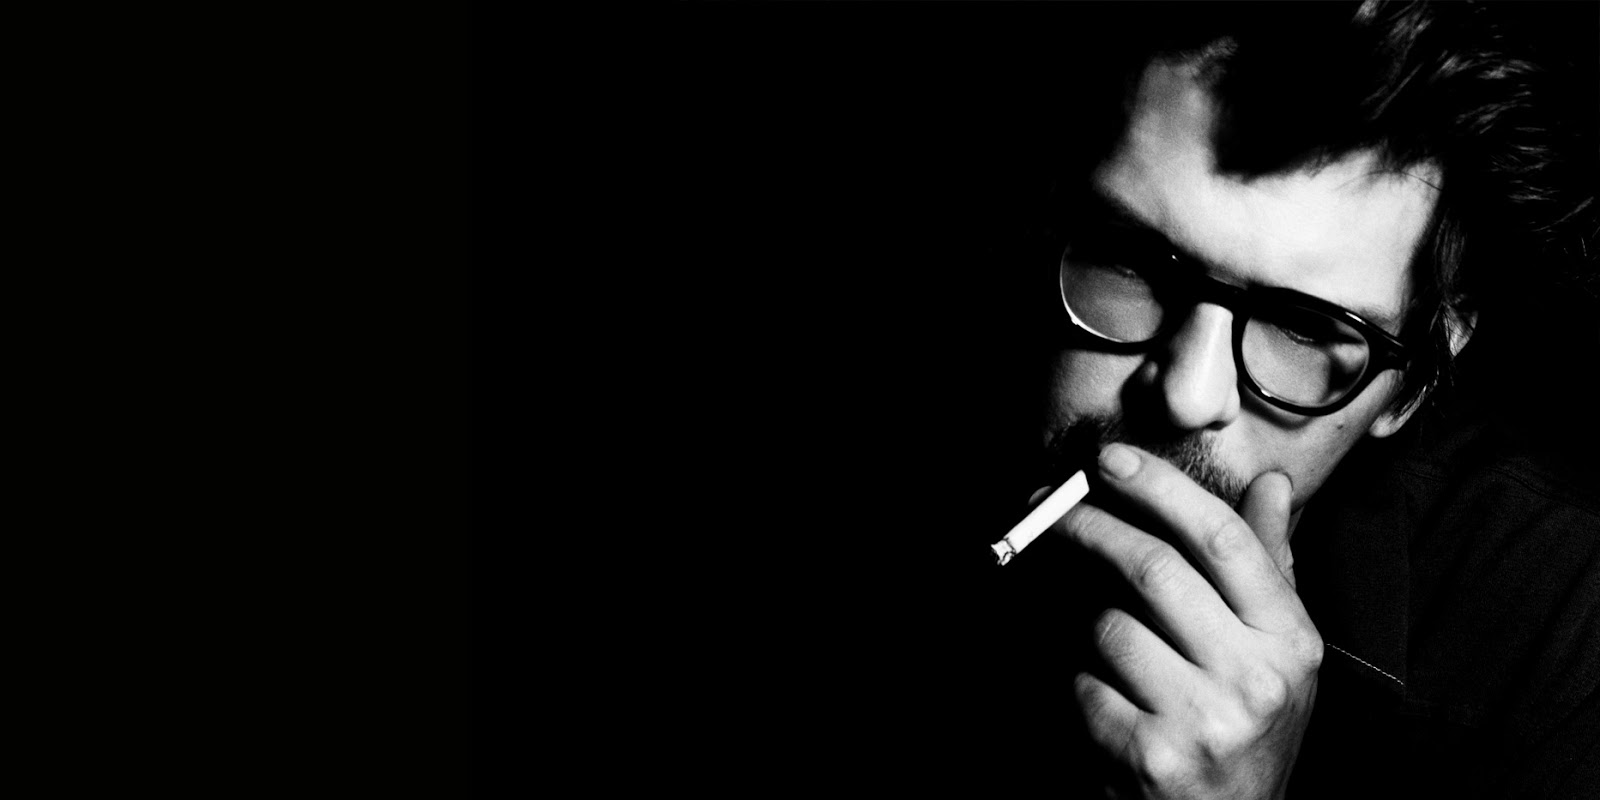 cigarette smoking wallpaper